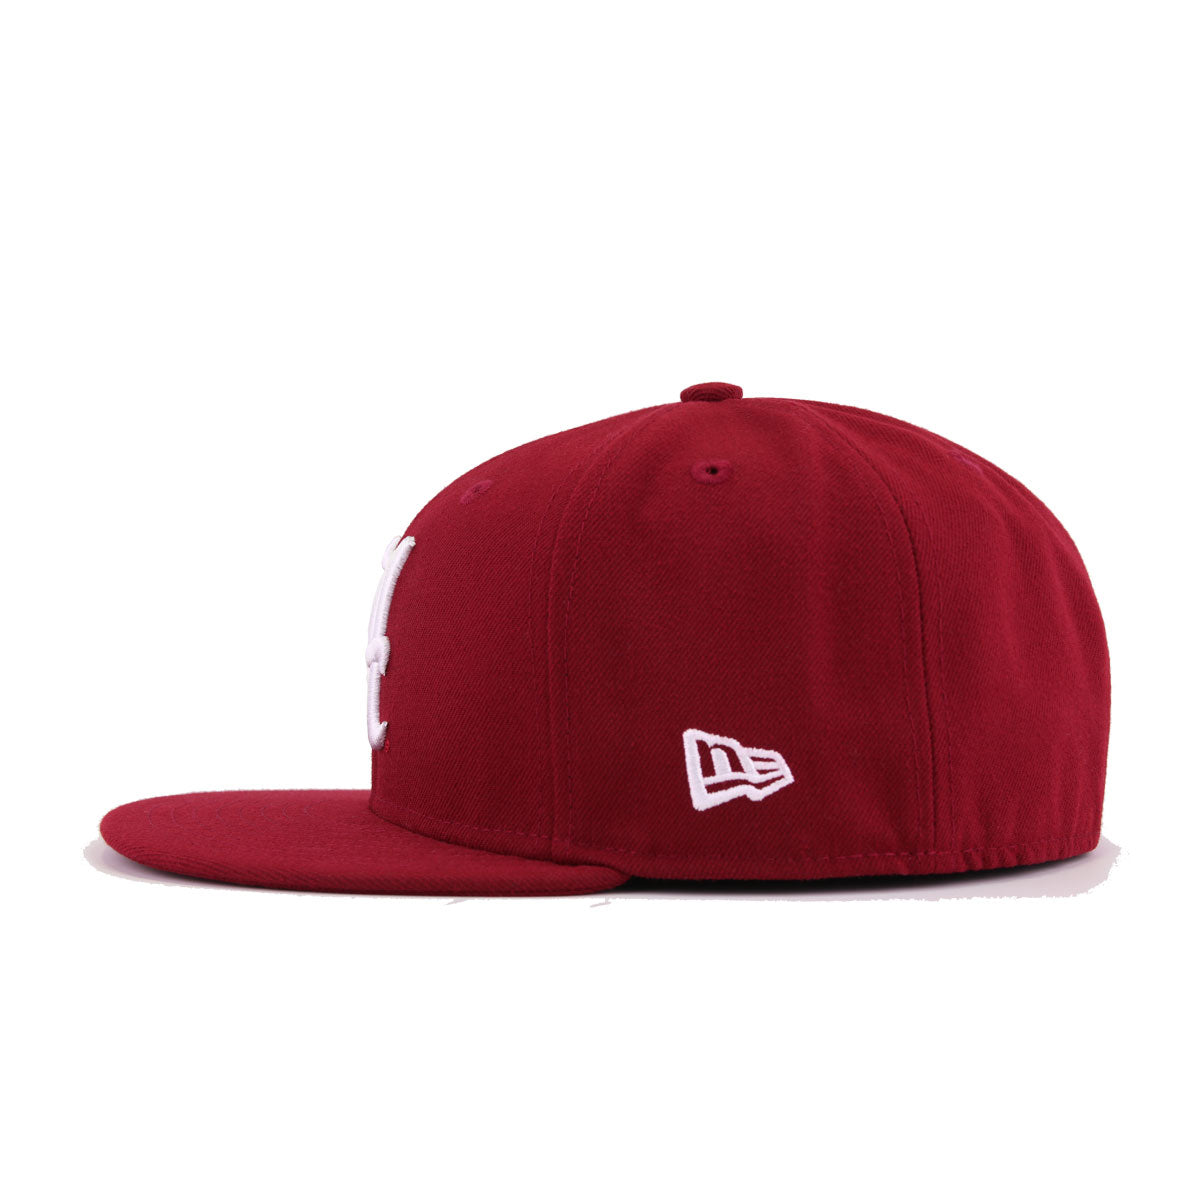 University of Alabama Crimson Tide Cardinal Red New Era 59Fifty Fitted